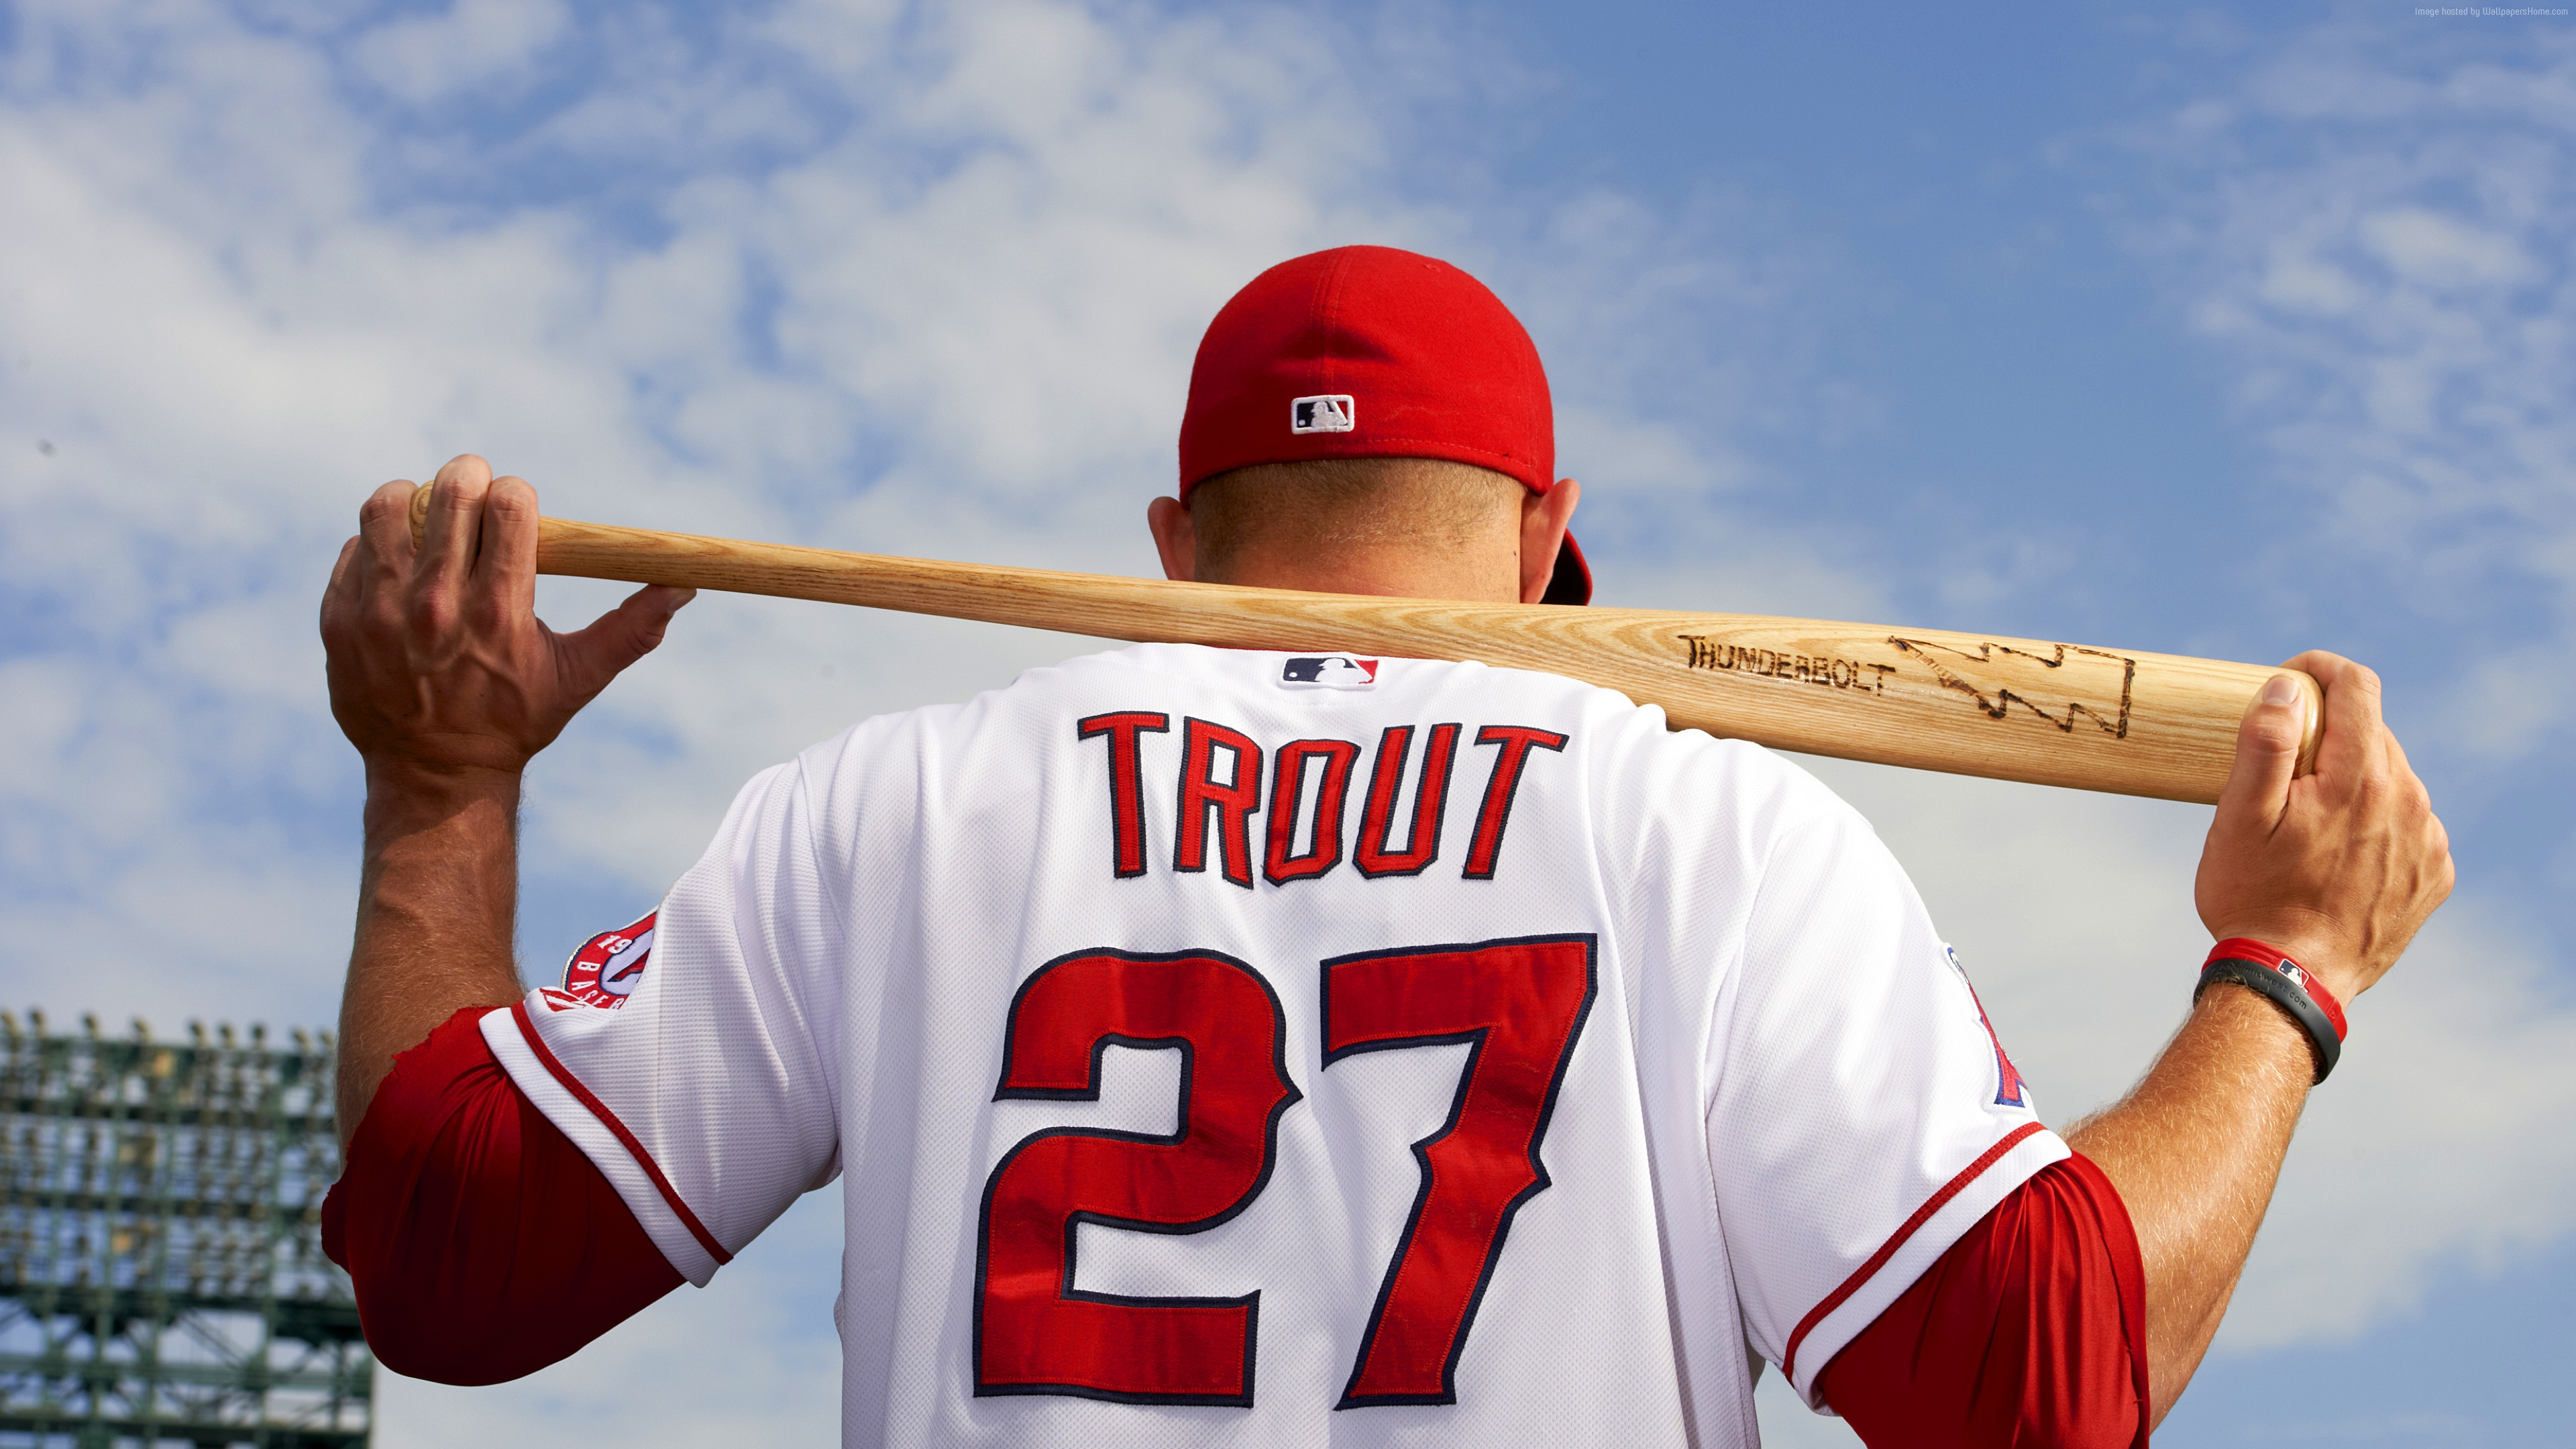 Wallpaper Baseball, Top baseball players, Mike Trout, Los Angeles Angels of Anaheim, Sport